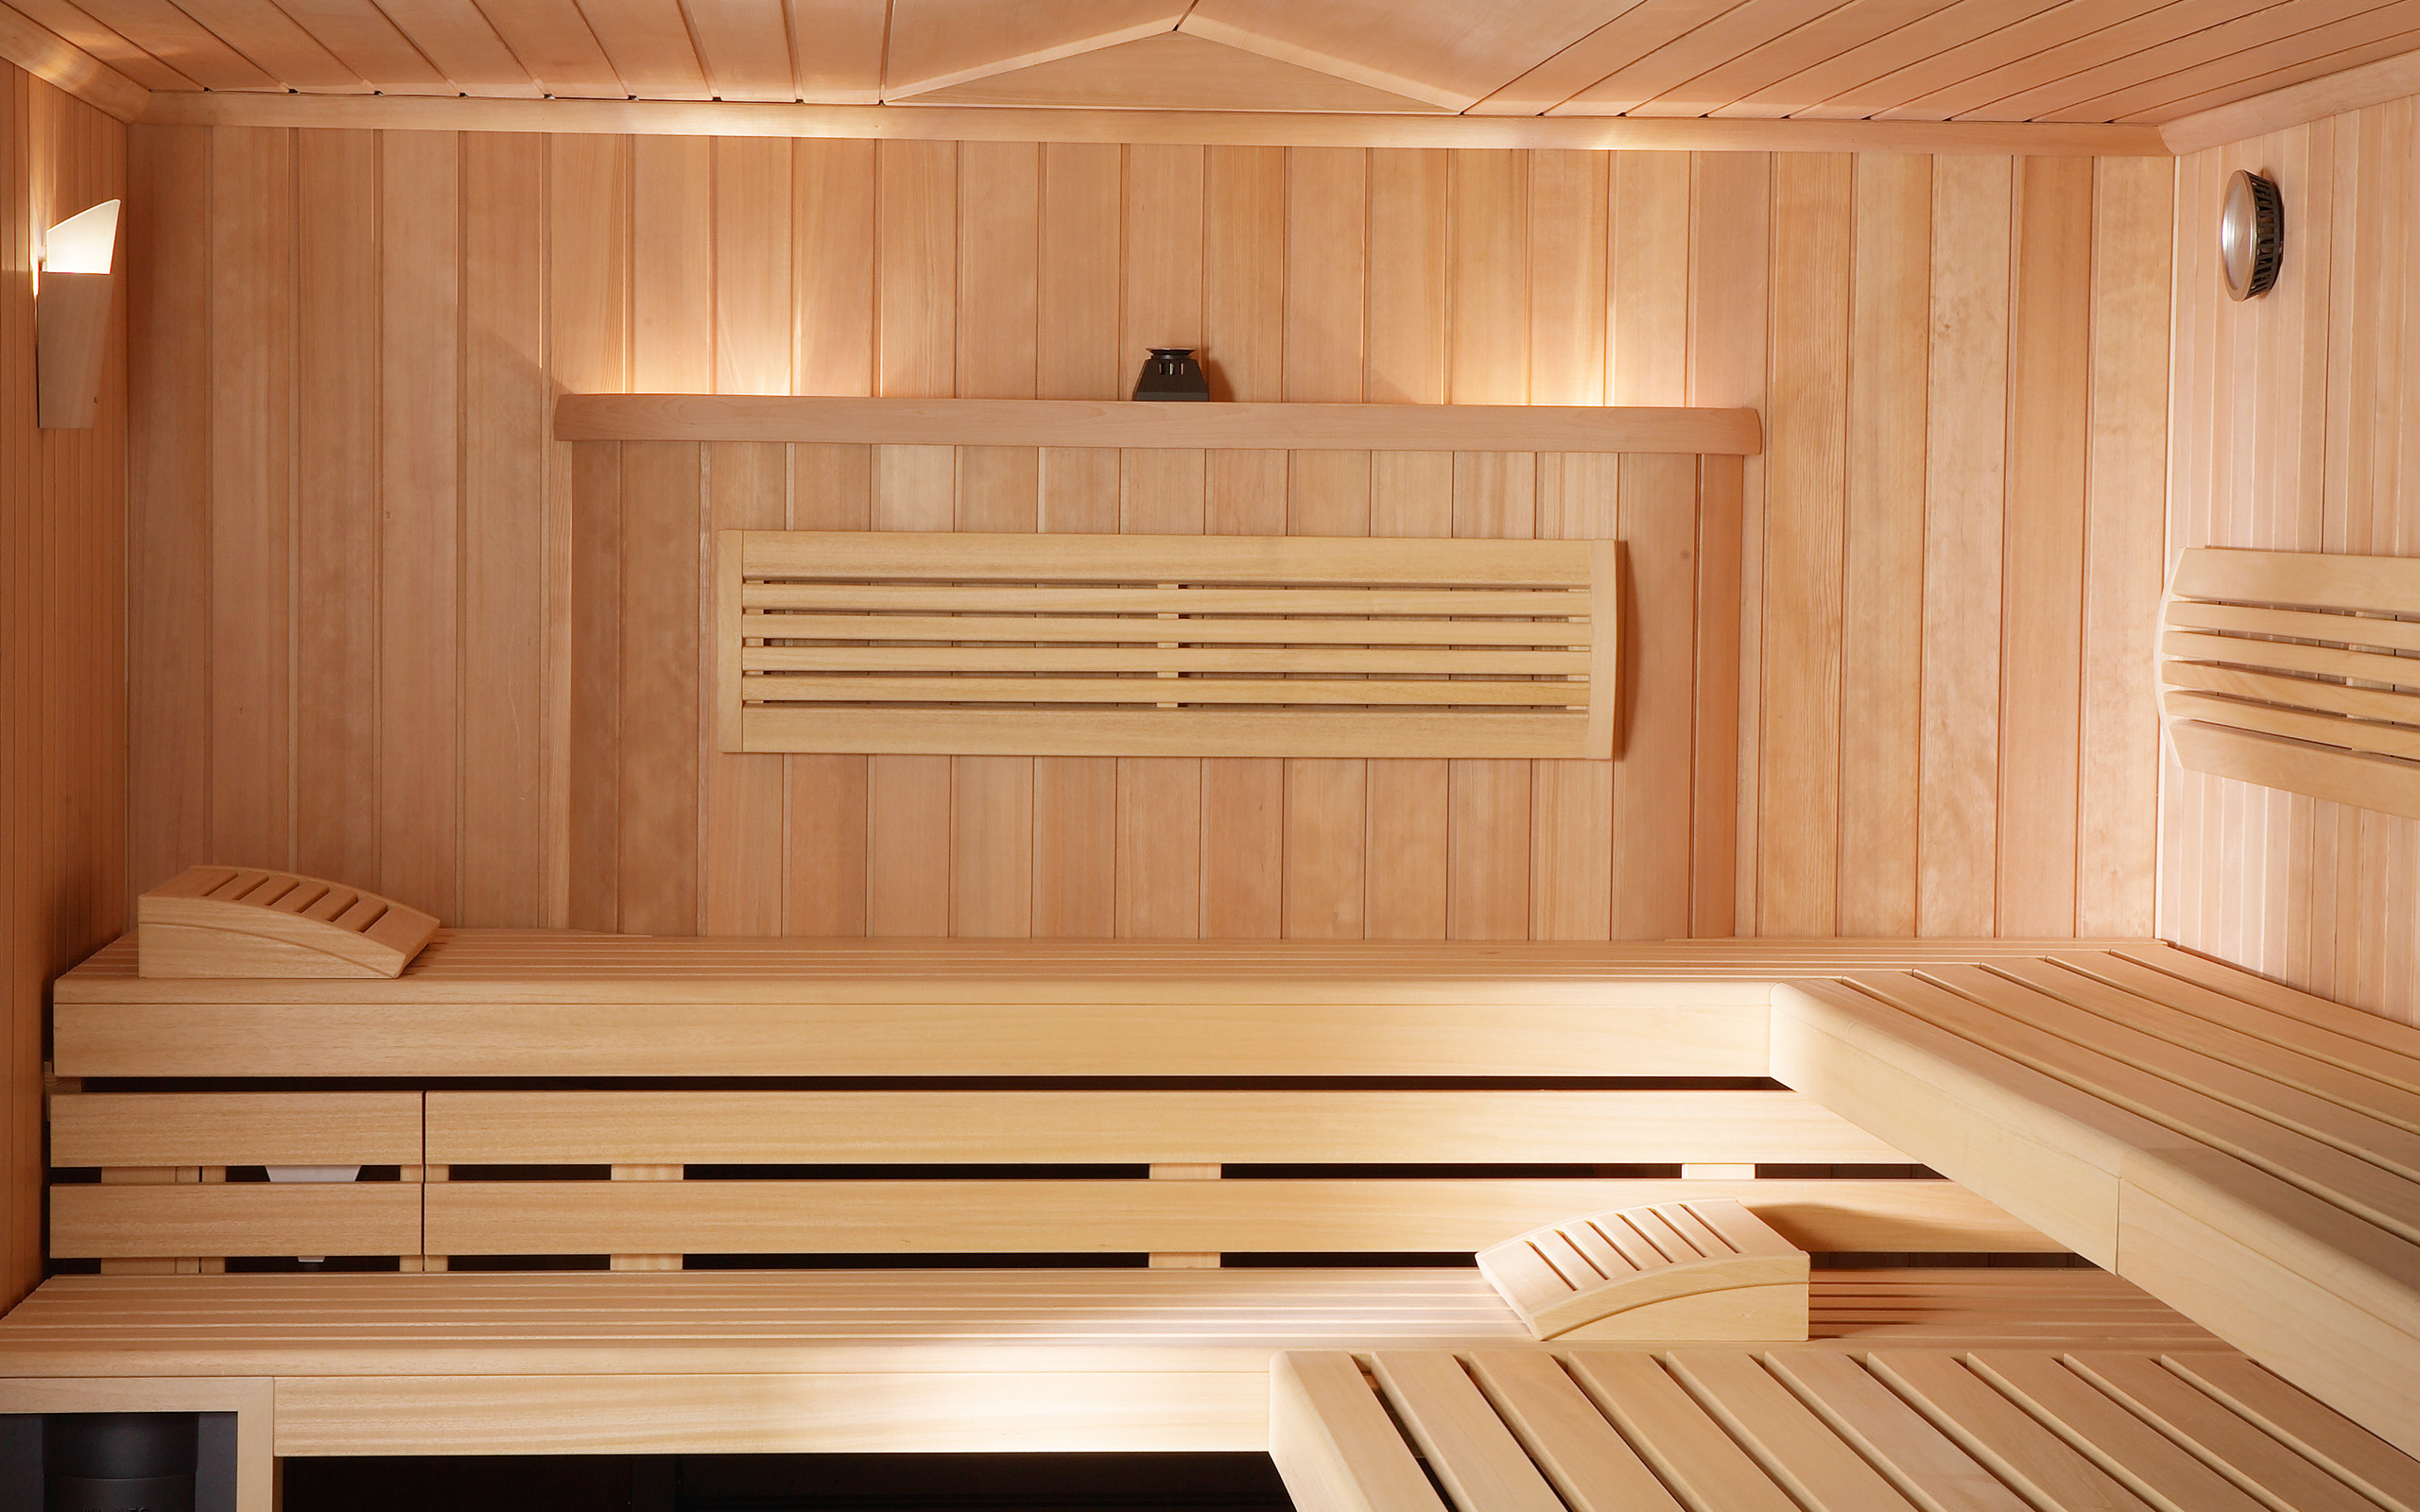 sauna premium die hochwertige und individuelle sauna. Black Bedroom Furniture Sets. Home Design Ideas